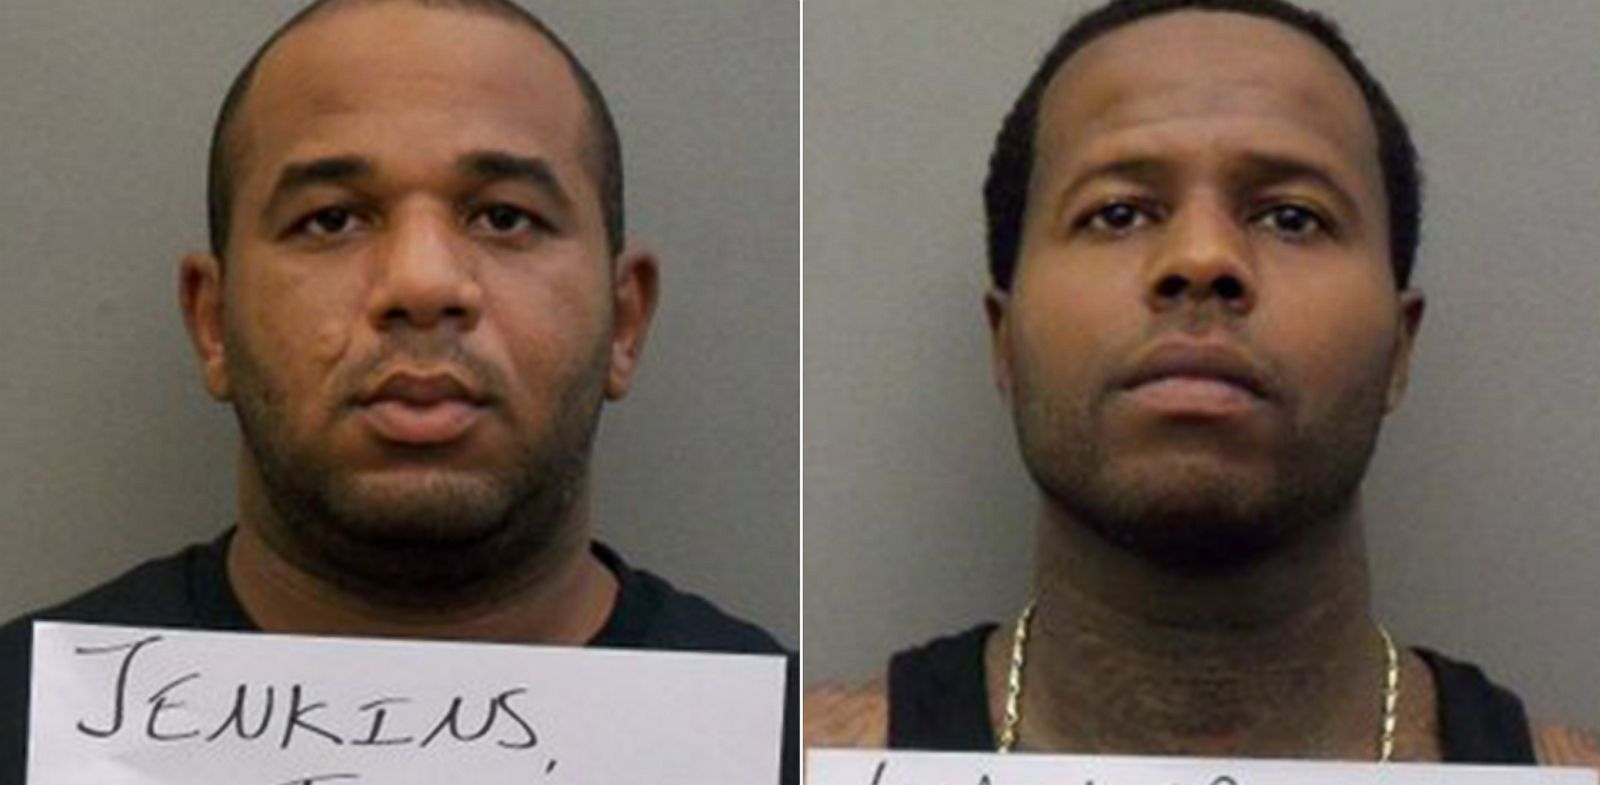 PHOTO: Joseph Jenkins, left, as seen at the Orange County Jail on Sept. 30, 2013 and Charles Walker, right, as seen at Orange County Jail on Oct. 11, 2013. Both men escaped from prison and are currently being pursued in a national manhunt.